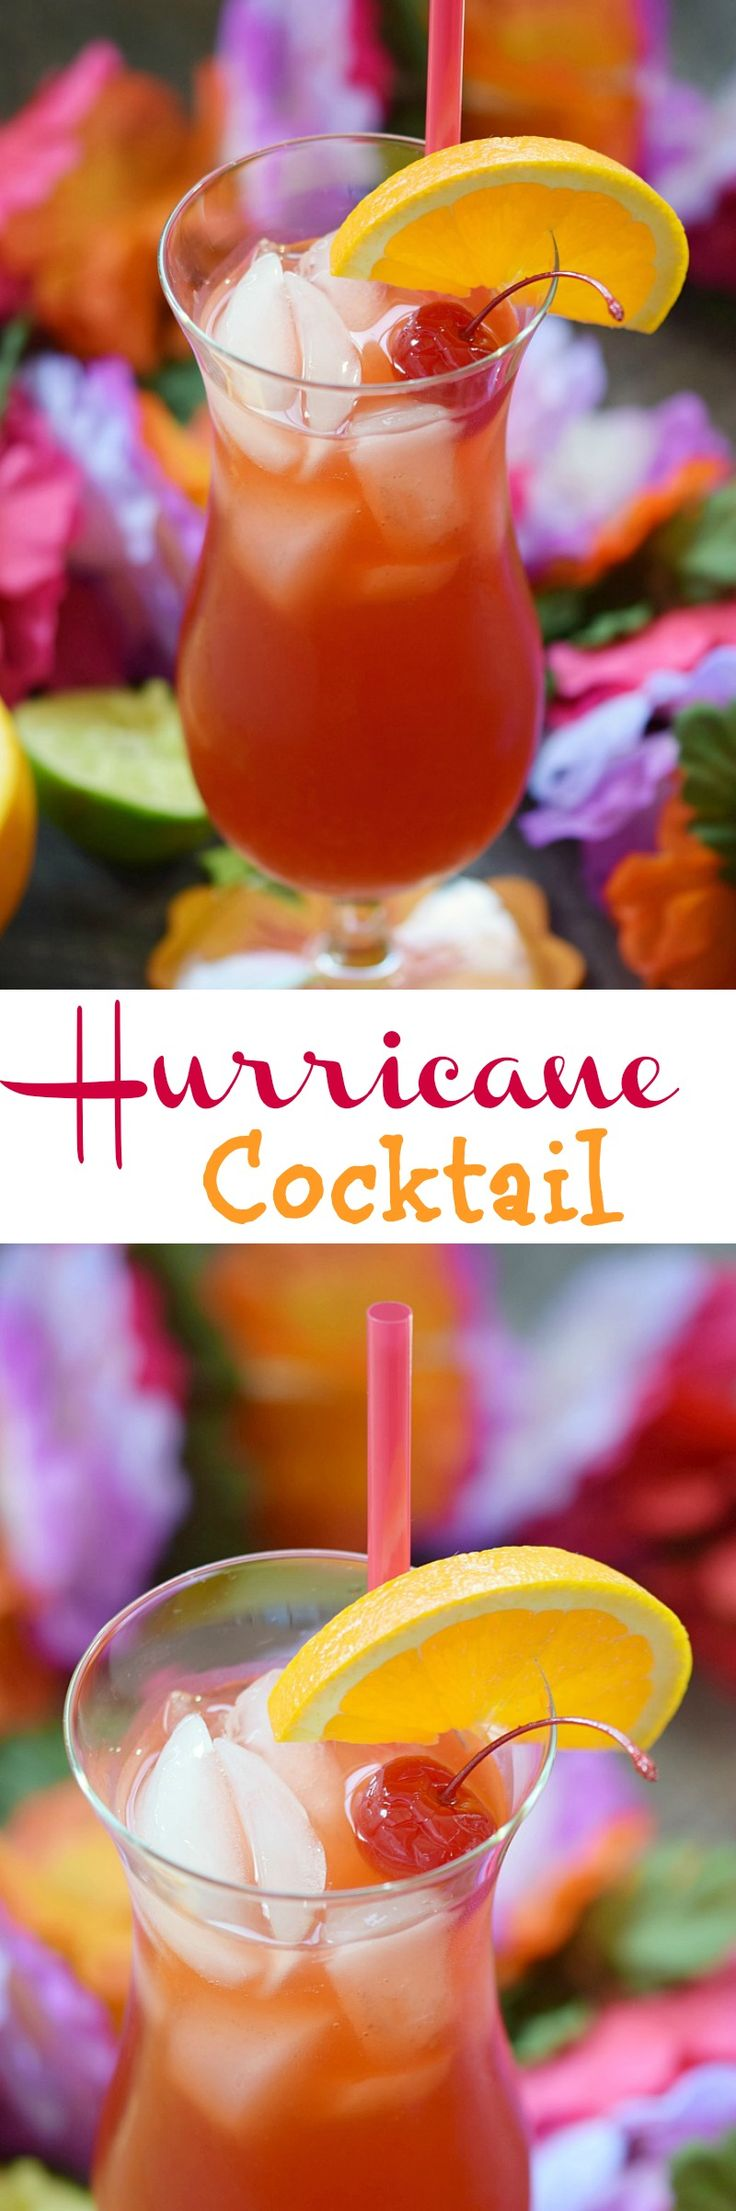 This Hurricane Cocktail seems tame at first with it's fruity flavors, then turns into a full-blown Category 5 if you let your guard down | cookingwithcurls.com